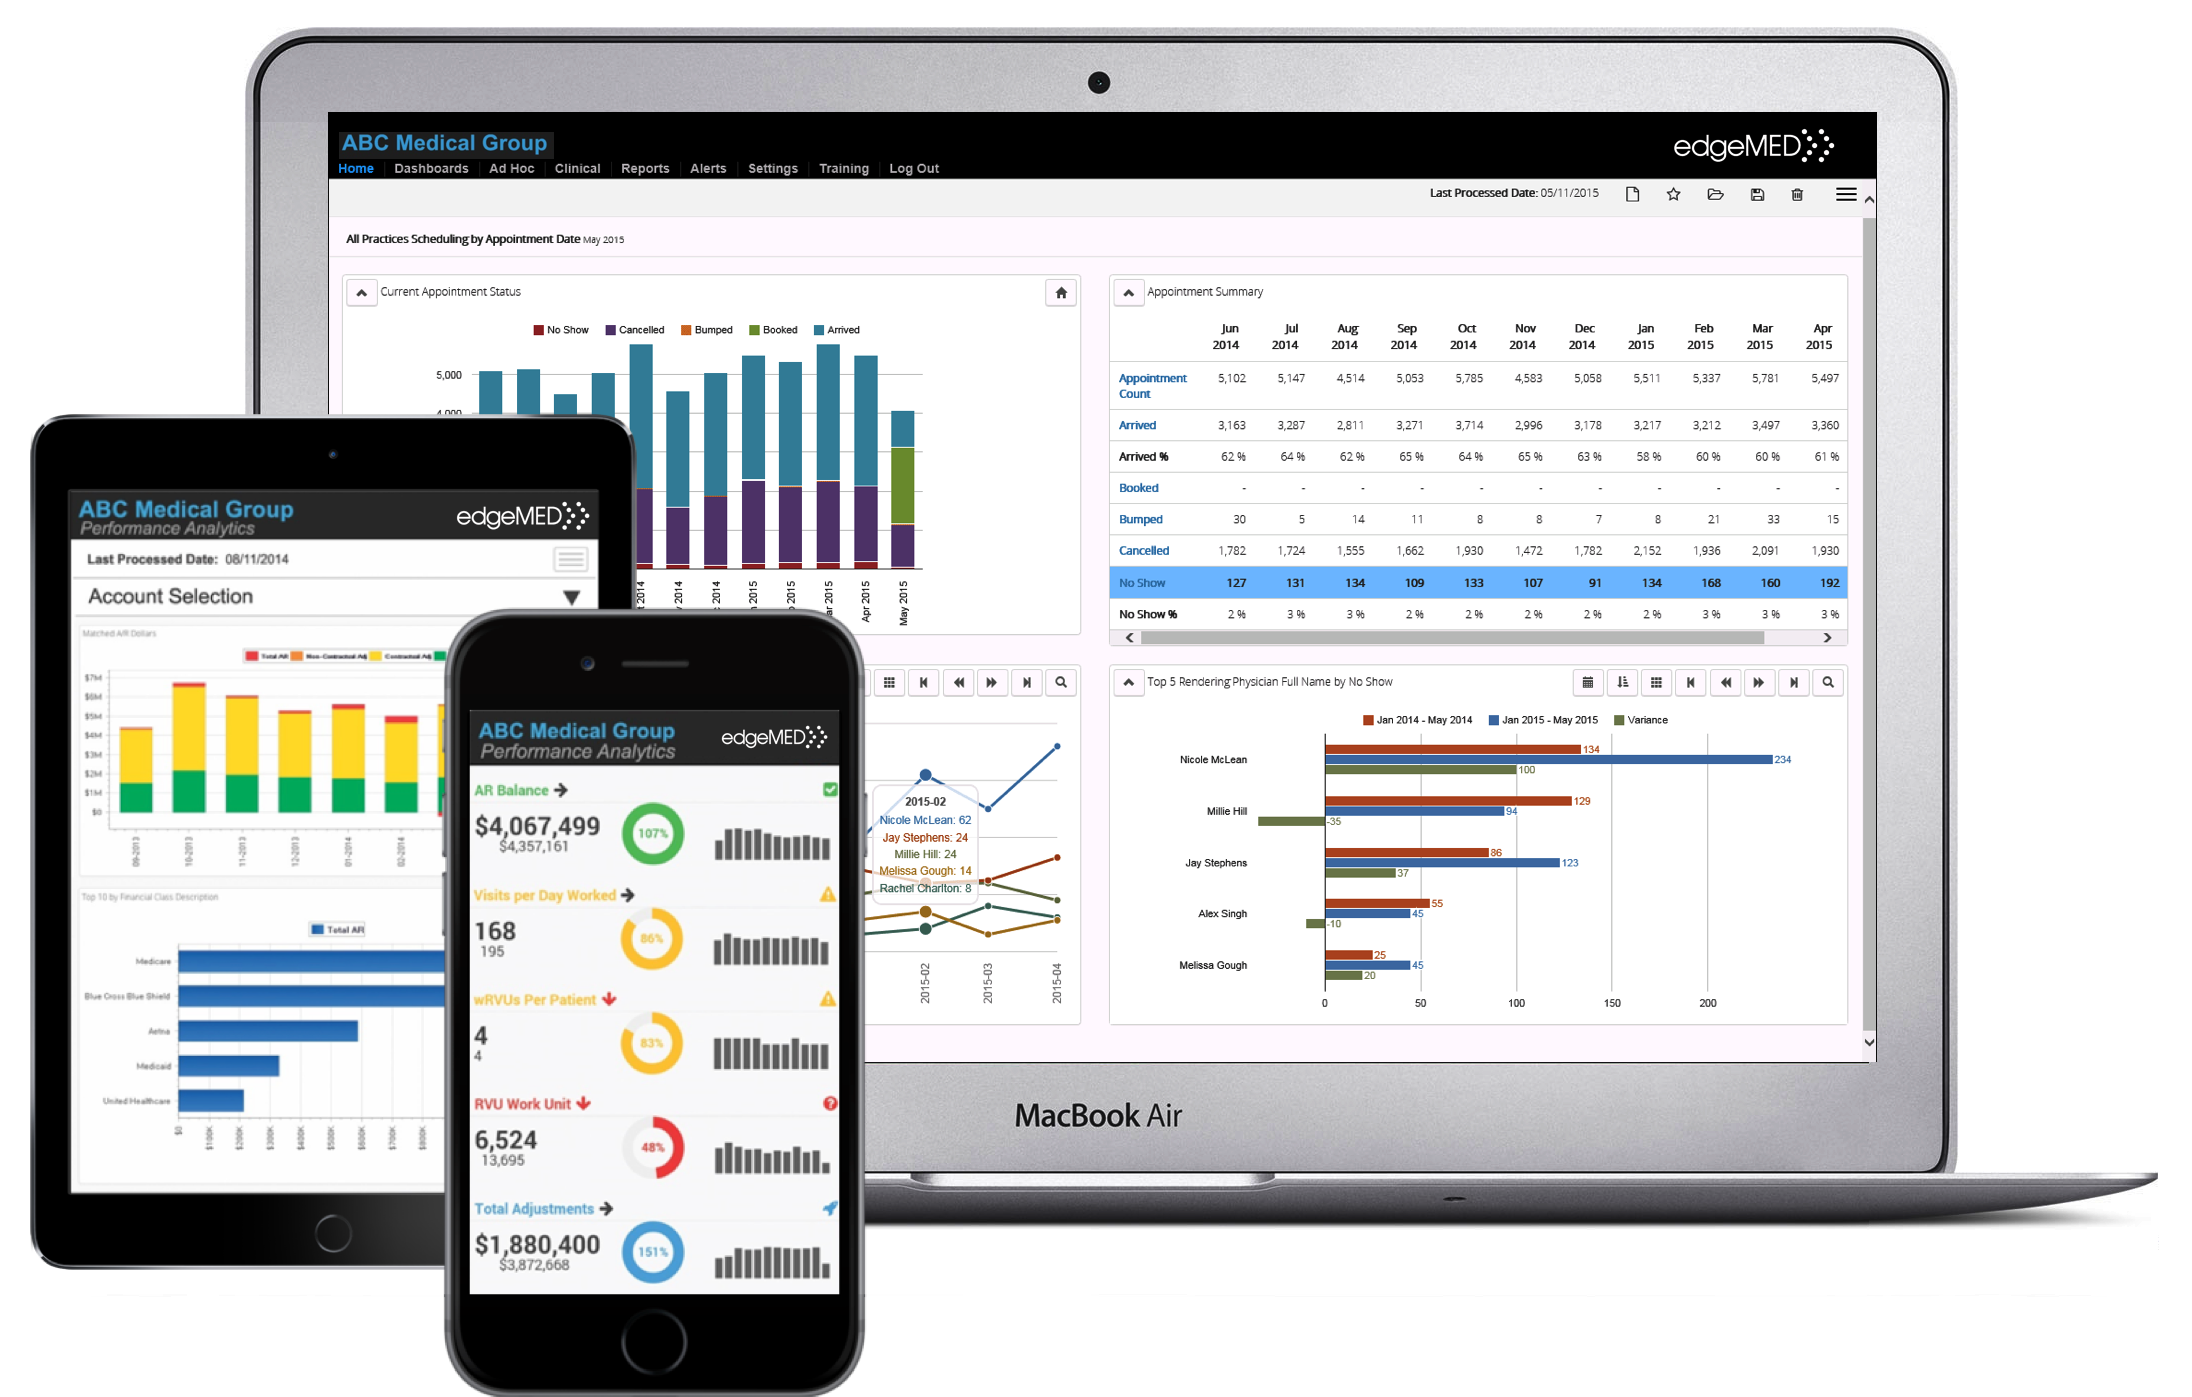 edgeMED Demo - Business Intelligence Reporting